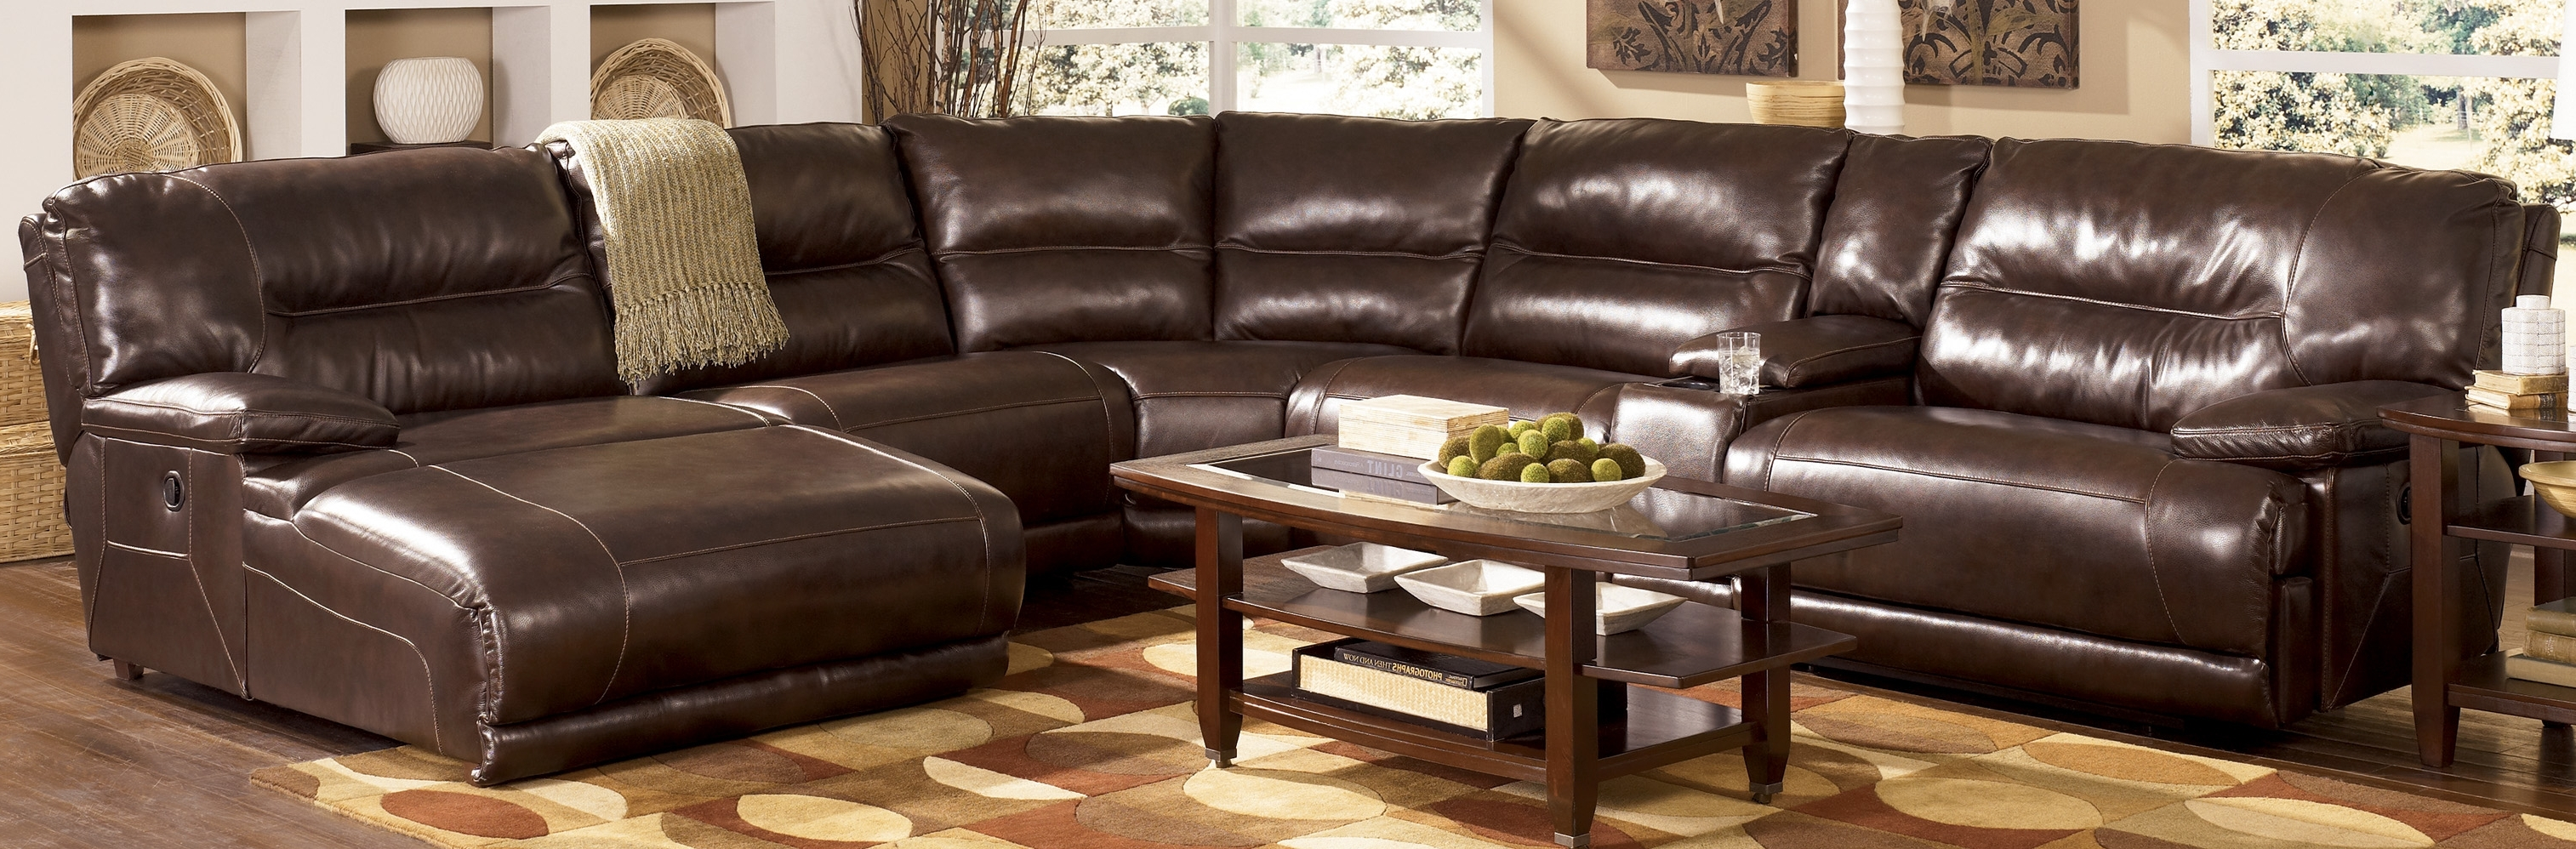 Faux Leather Sectional Sofa With Chaise Inside Trendy Genuine Leather Sectionals With Chaise (View 7 of 15)